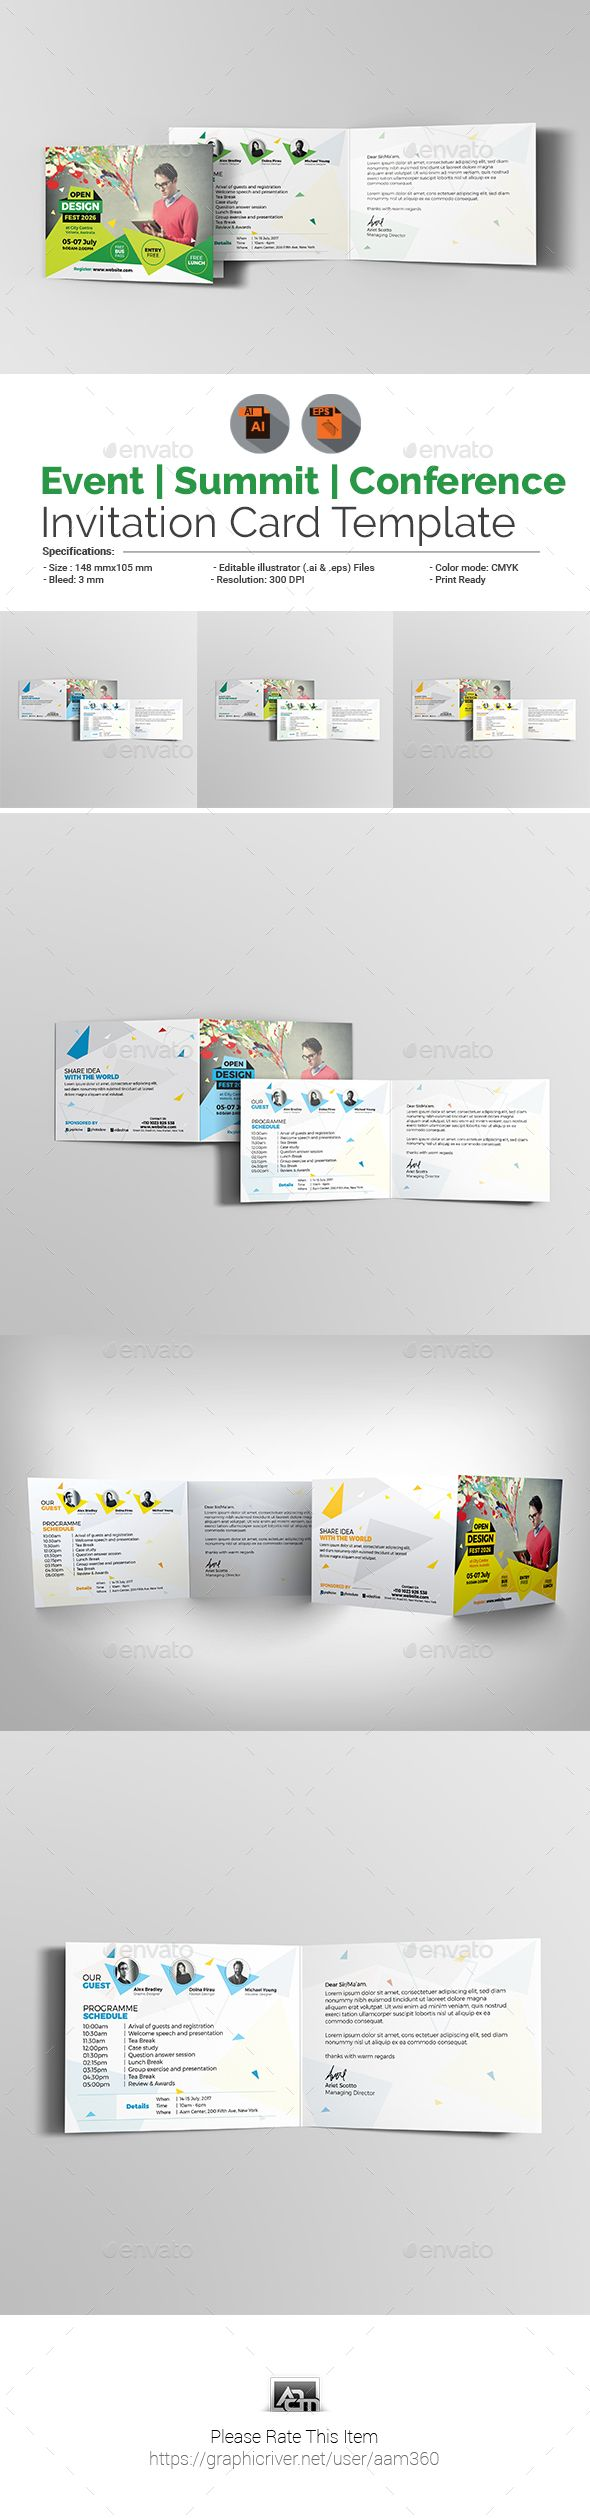 Event/Summit/Conference Invitation Card Template - #Cards & #Invites Print Templates